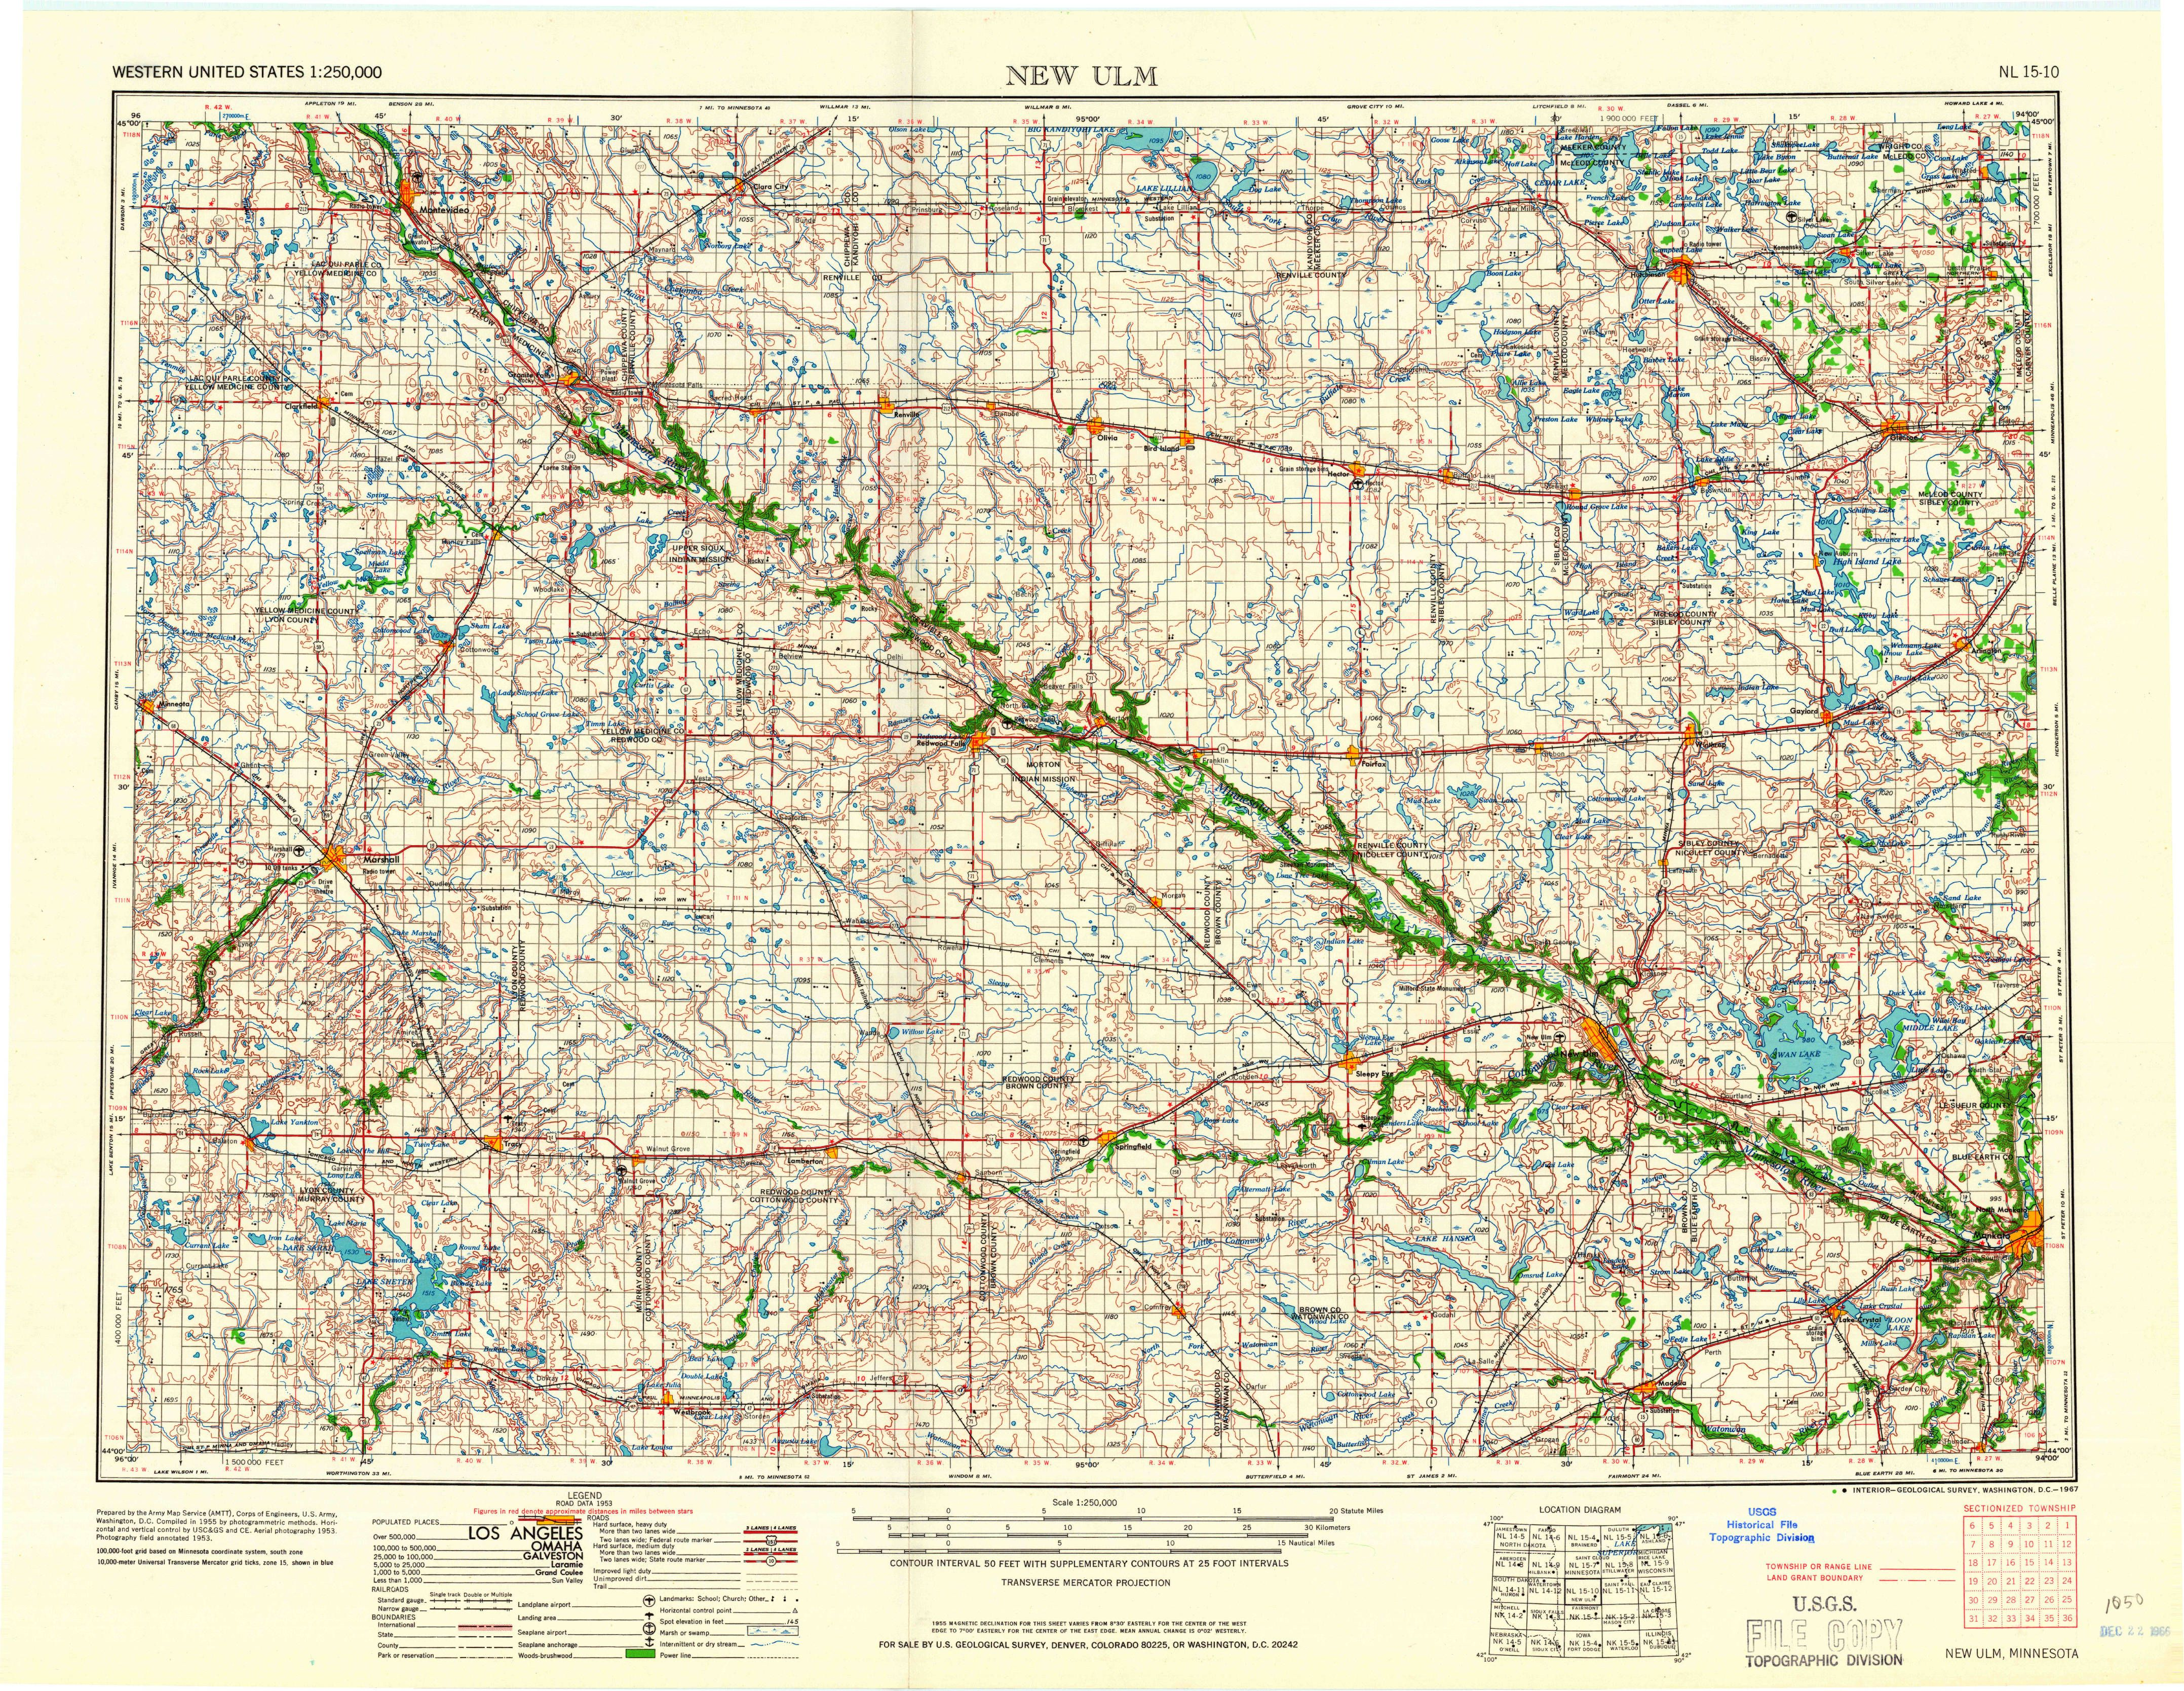 New Ulm, MN—1967. Map from the USGS Historical Topographic Map ...